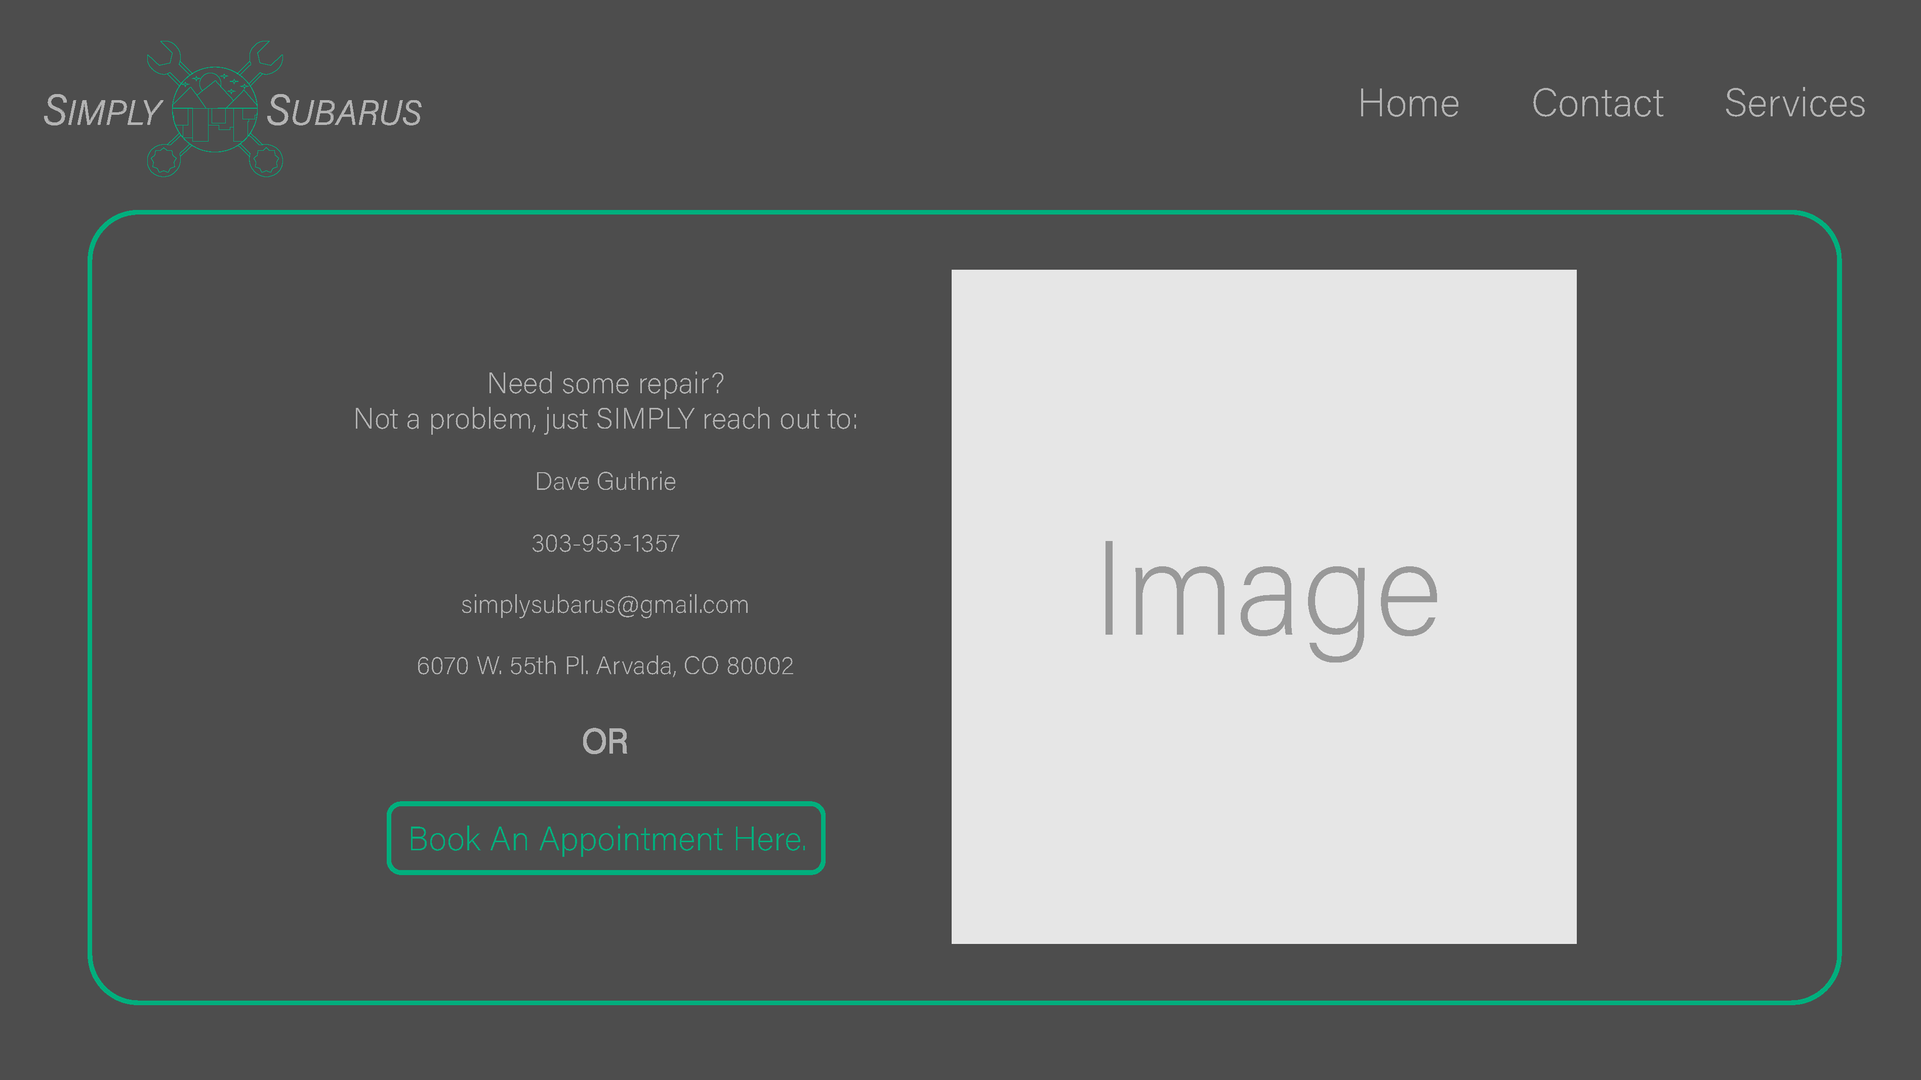 SquareSpaceworkspace_Page_2.png